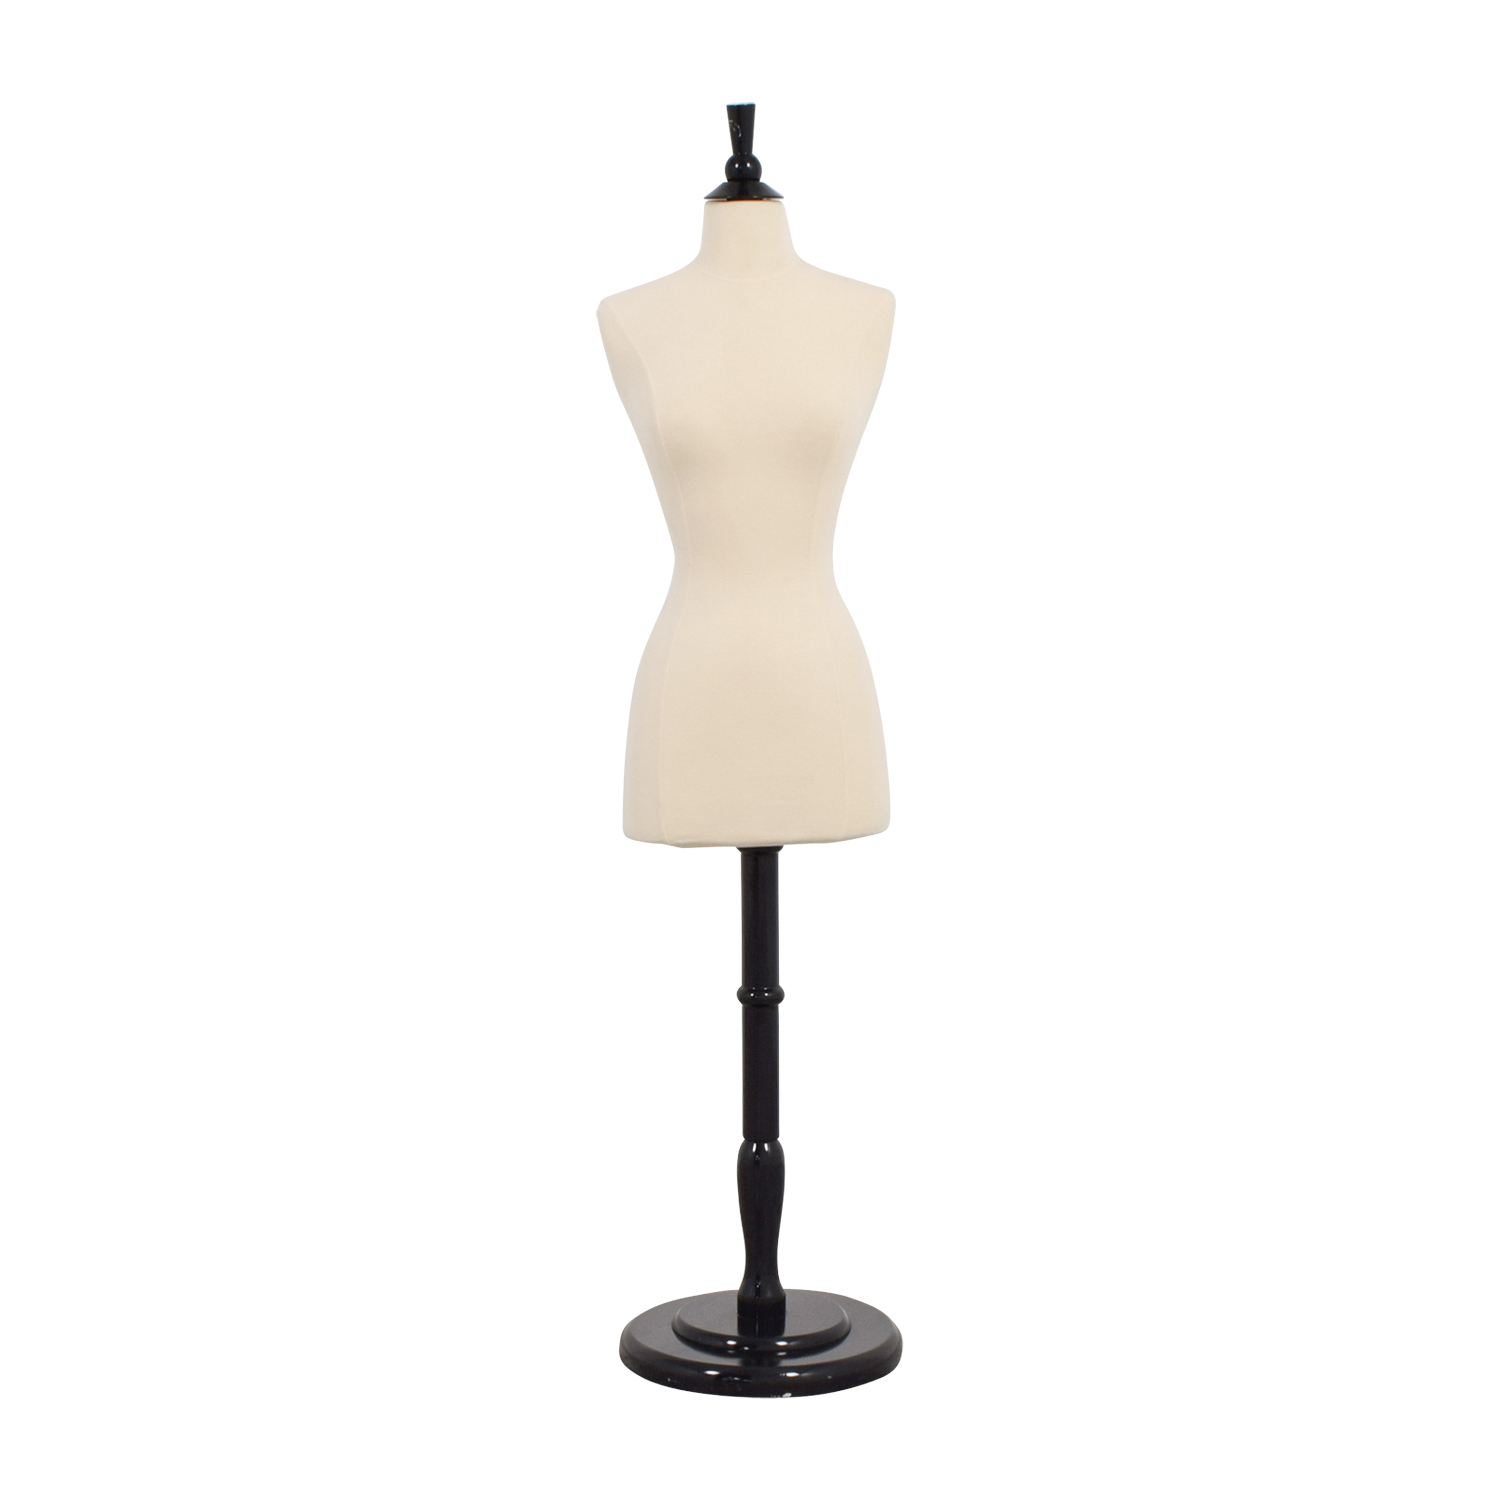 OFF Dressform White and Black Mannequin Decor